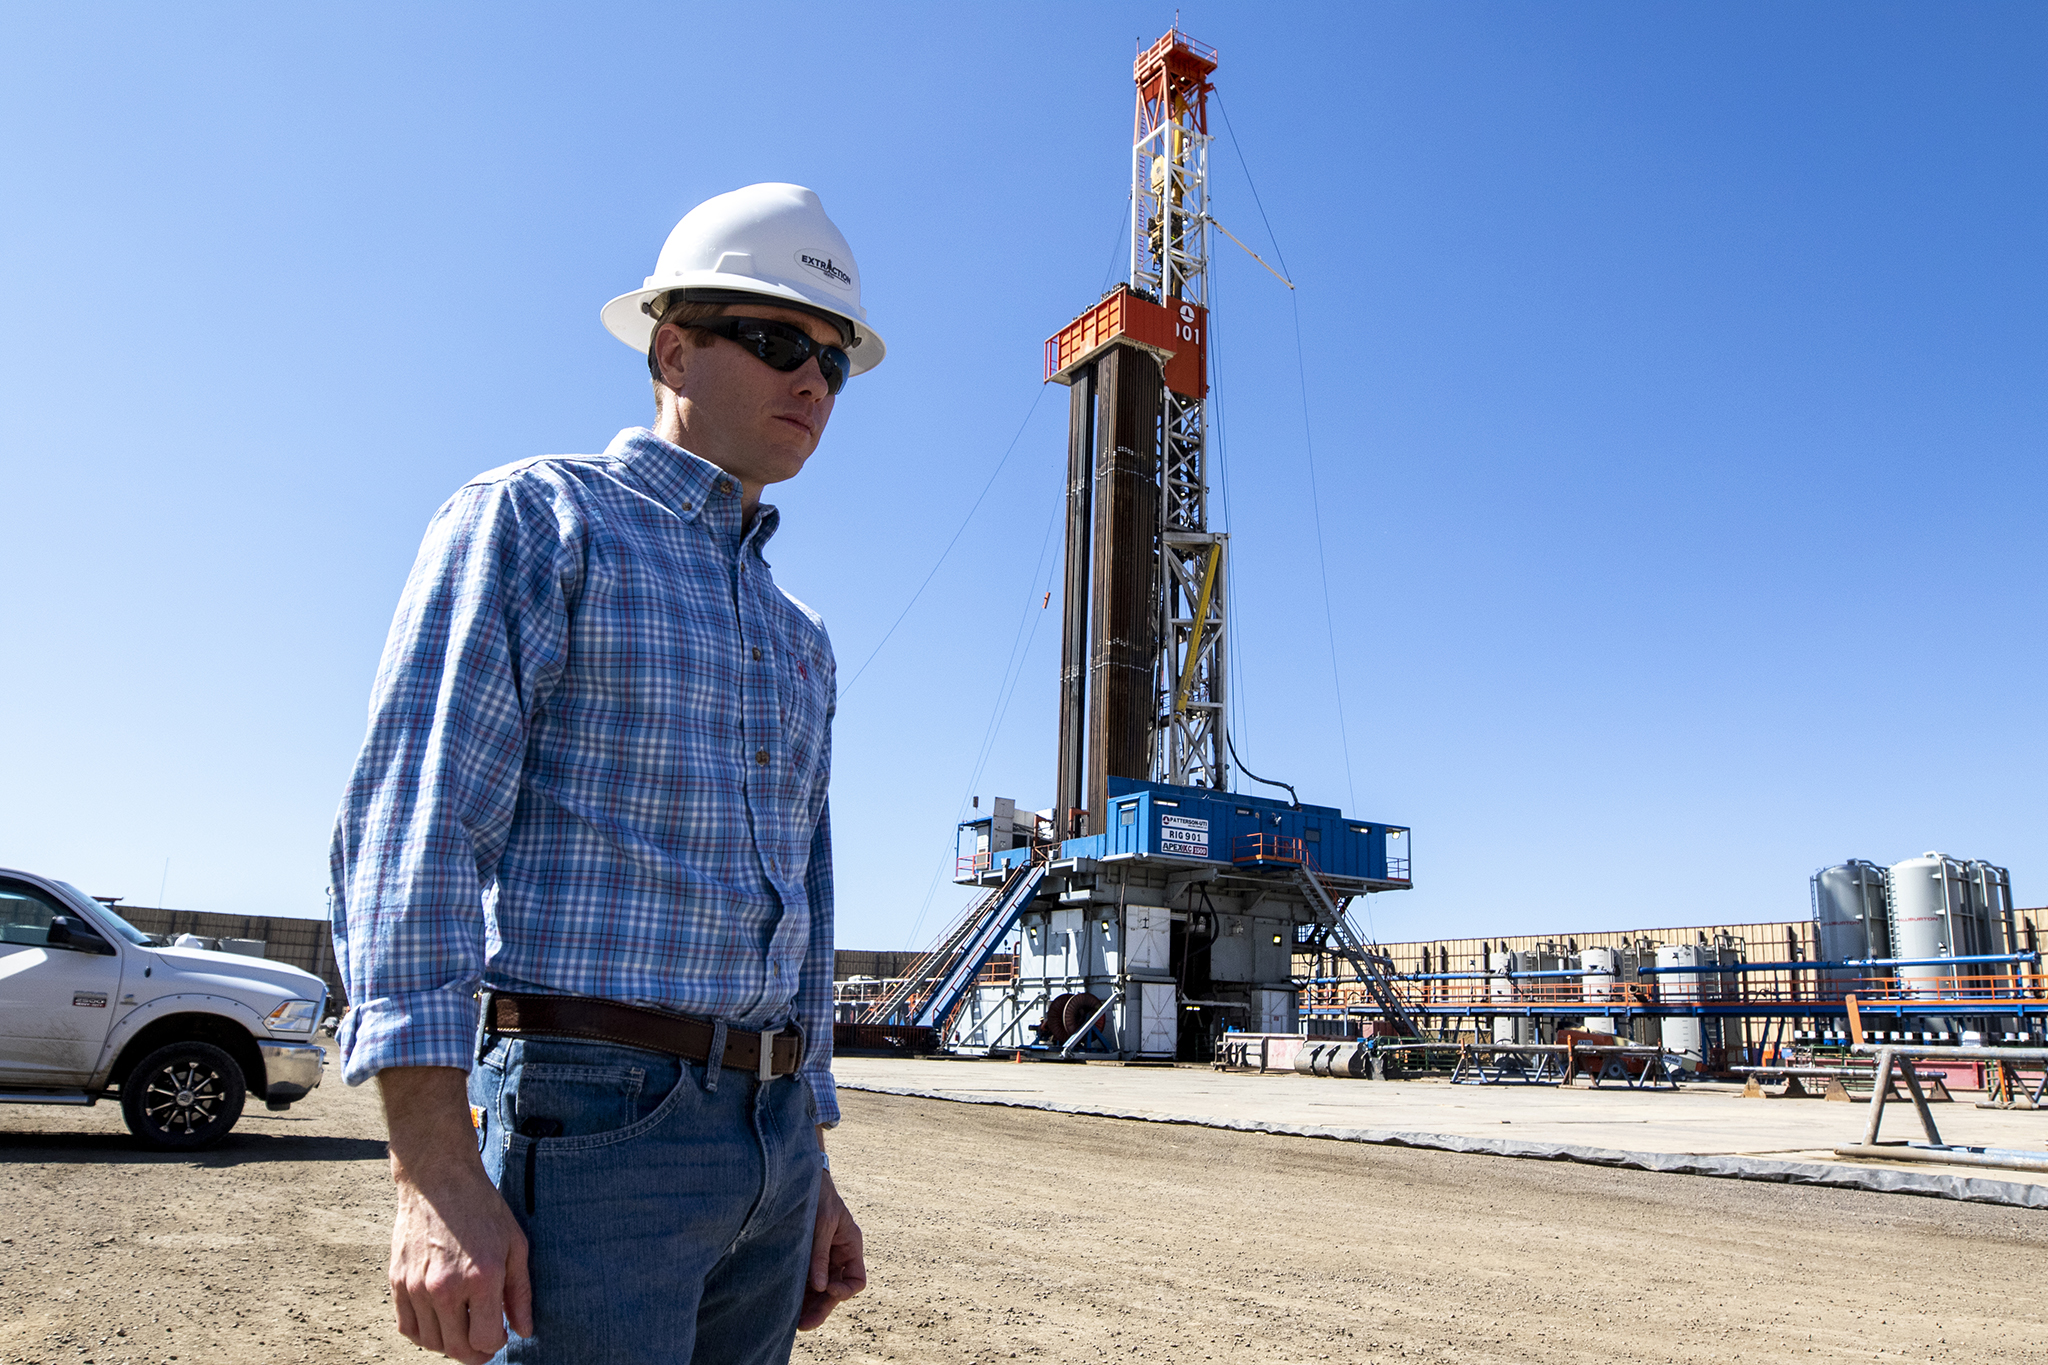 Extraction Oil and Gas' Brian Cain poses for a portrait on a drilling and fracking site, Sept. 13, 2019.